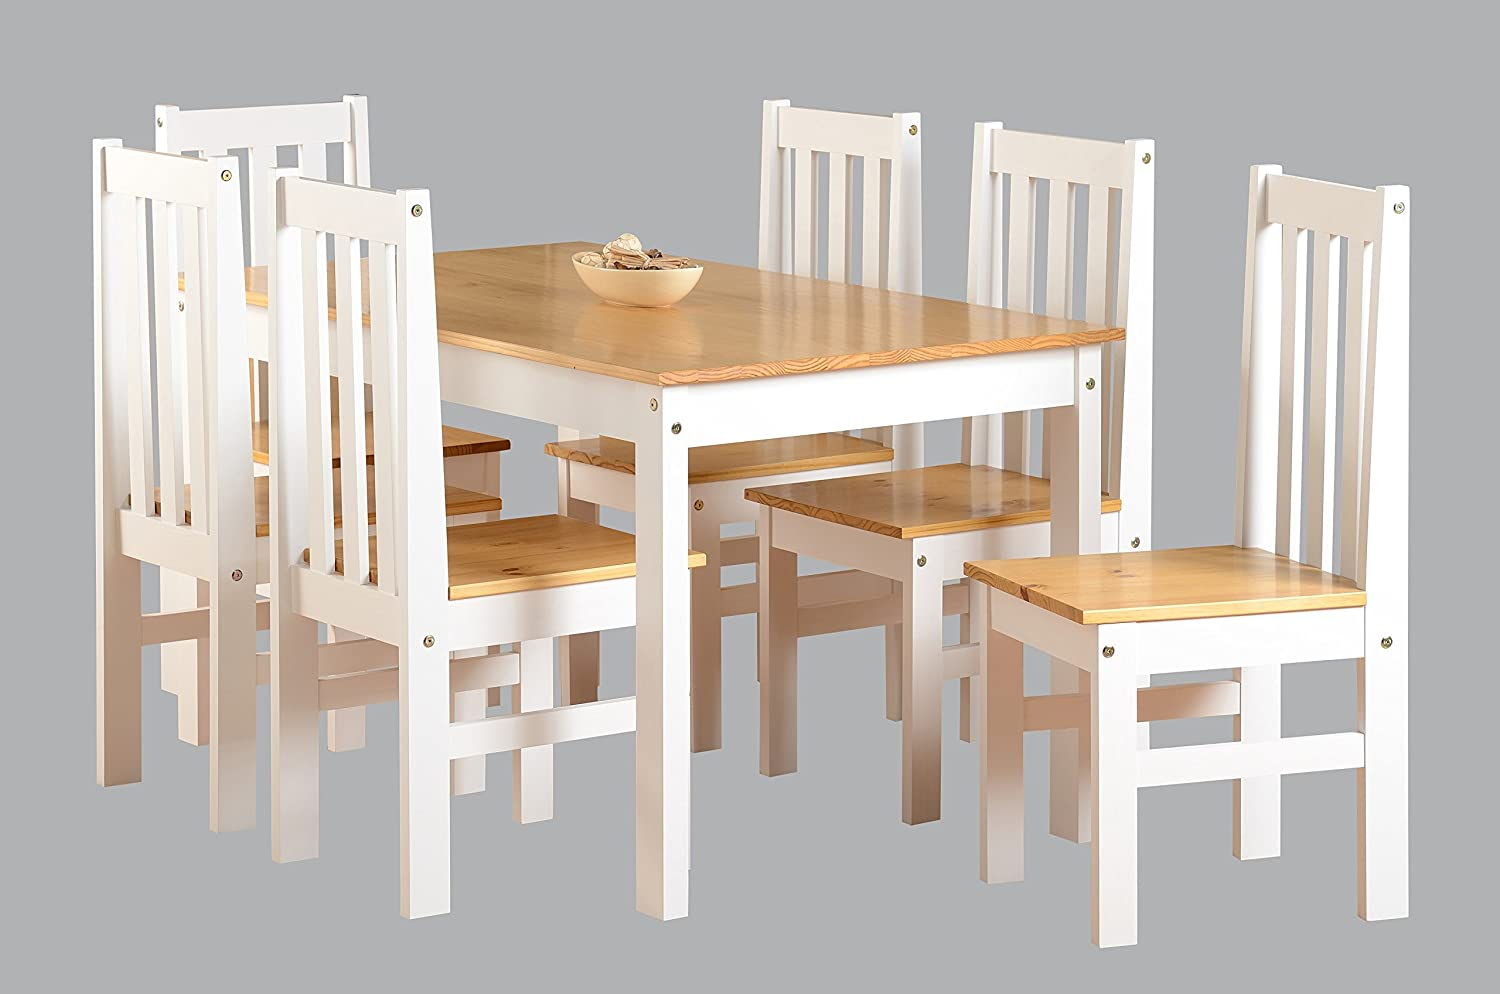 Ludlow Contrasting Pine And White Dining Set With 6 Chairs   Ludlow Dining  Range: Amazon.co.uk: Kitchen U0026 Home